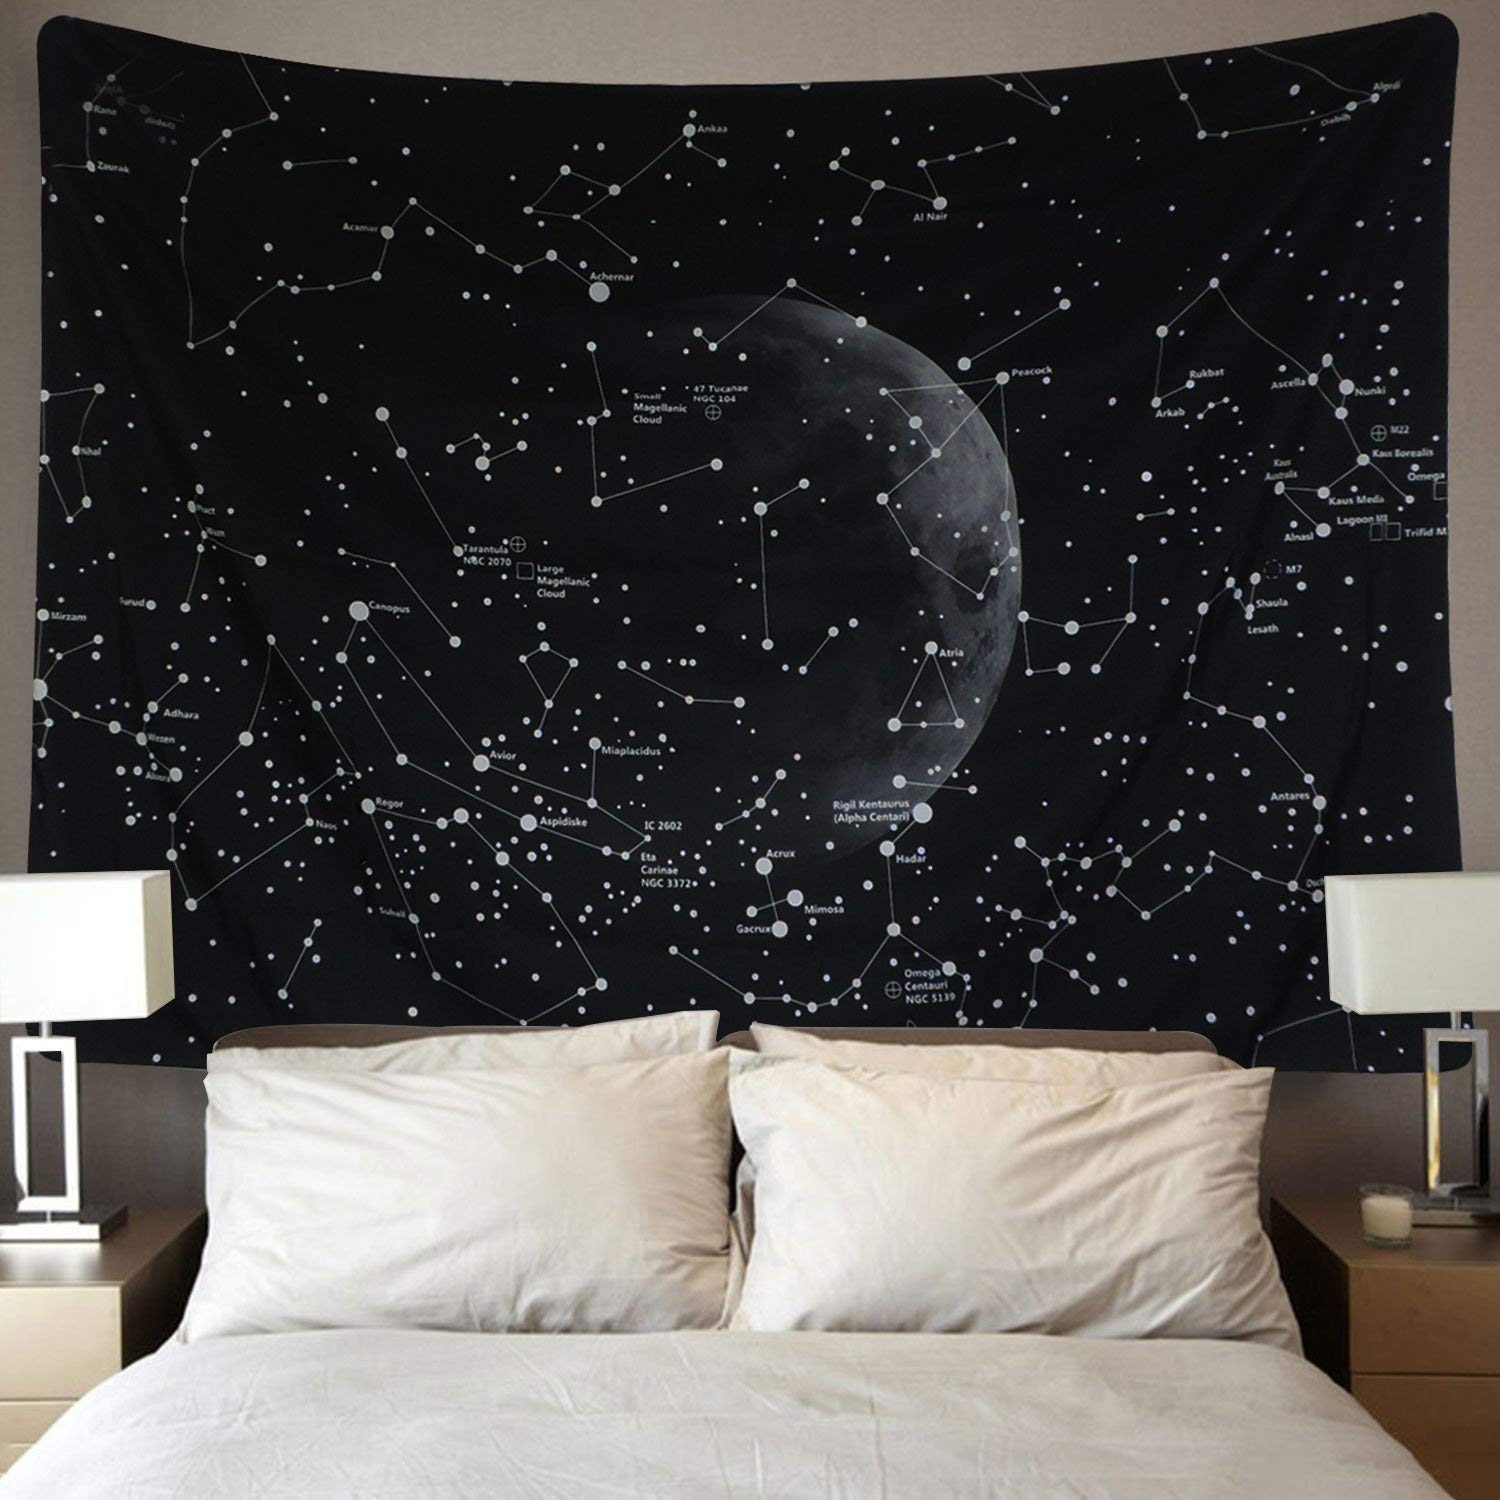 Dremisland Moon Tapestry Indian Hippie Bohemian Mandala Wall Hanging Tapestry Black for Nature Home Decorations Living Room Bedroom Dorm Decor (Constellations Map, M / 130 X 150 cm(51' X 59')) M / 130 X 150 cm(51 X 59))